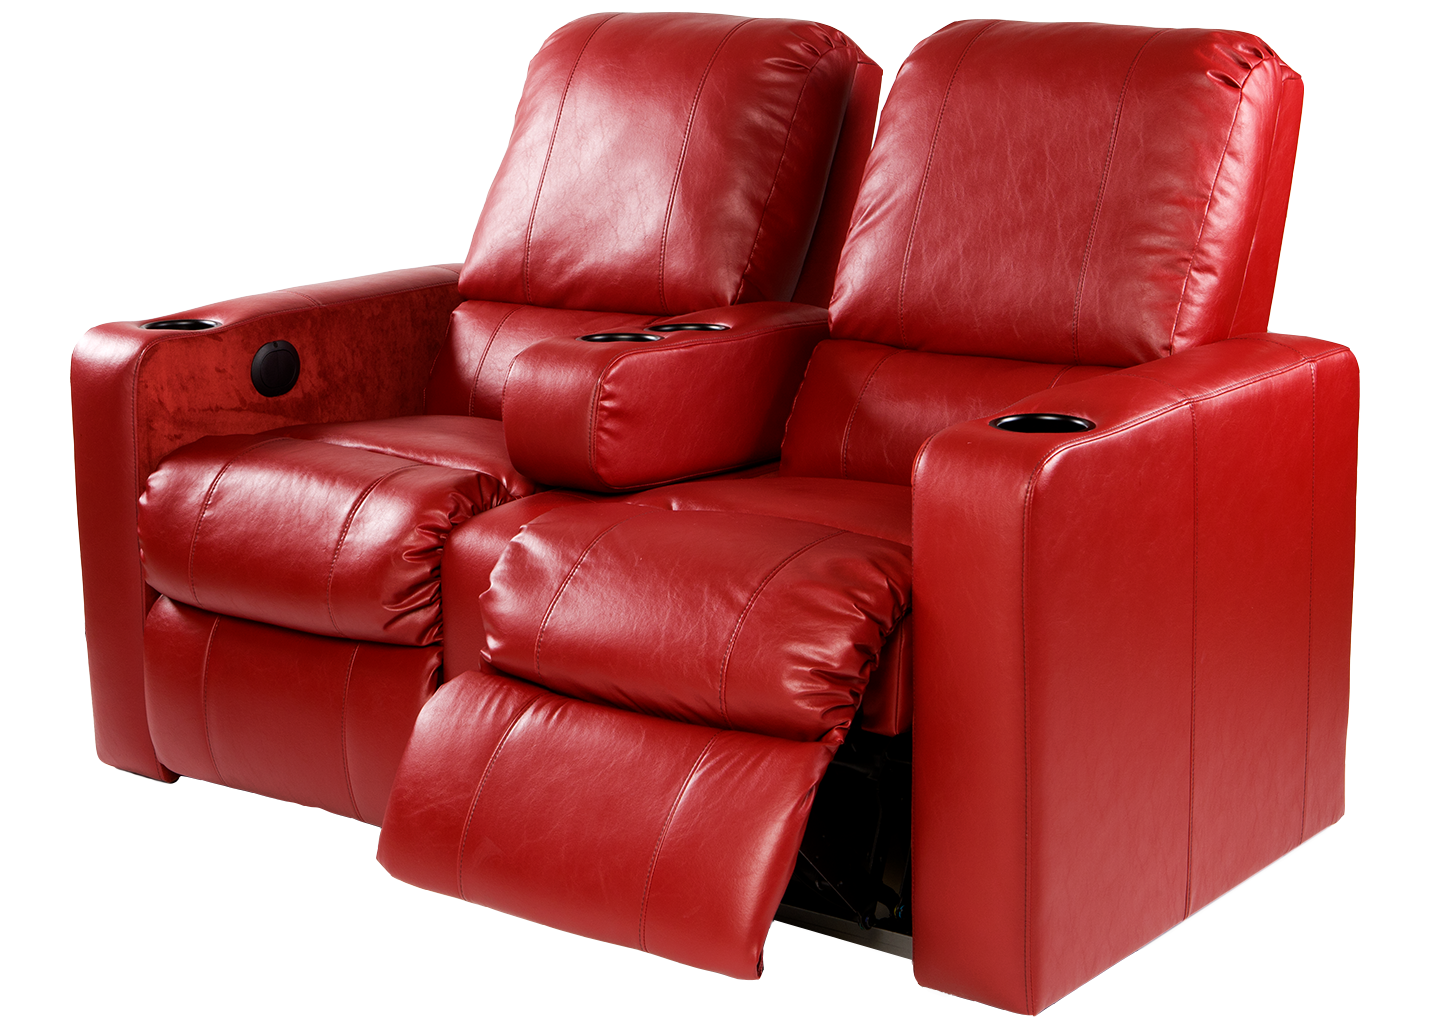 Full on Fun with AMC Full Recliners ...  sc 1 st  AMC Theatres & Recliner Seating islam-shia.org